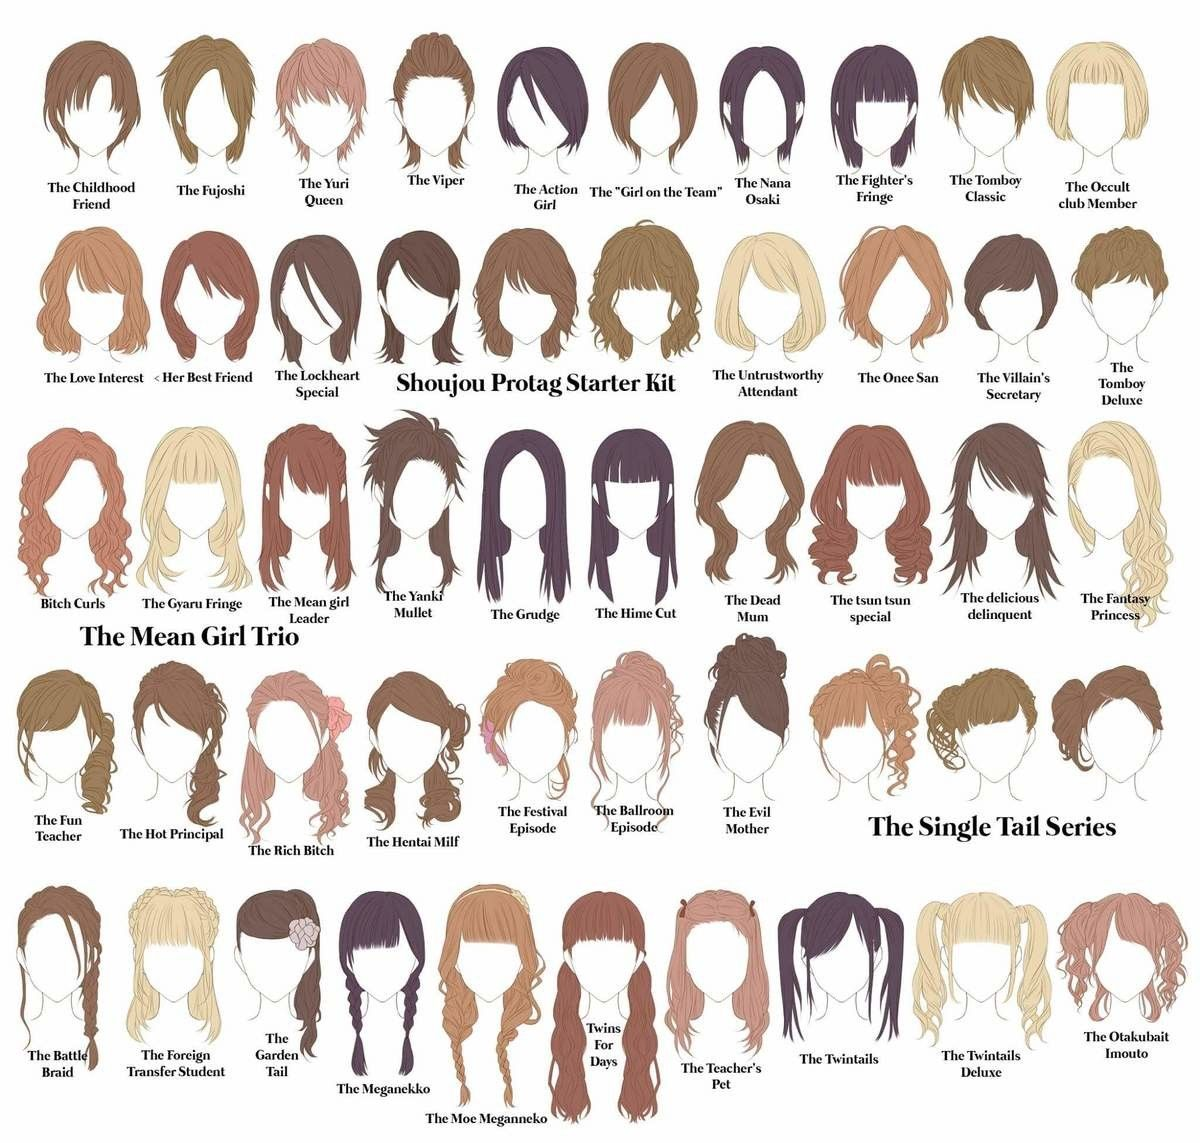 Haircut Names With Pictures For Ladies - Haircut Models  Dibujo